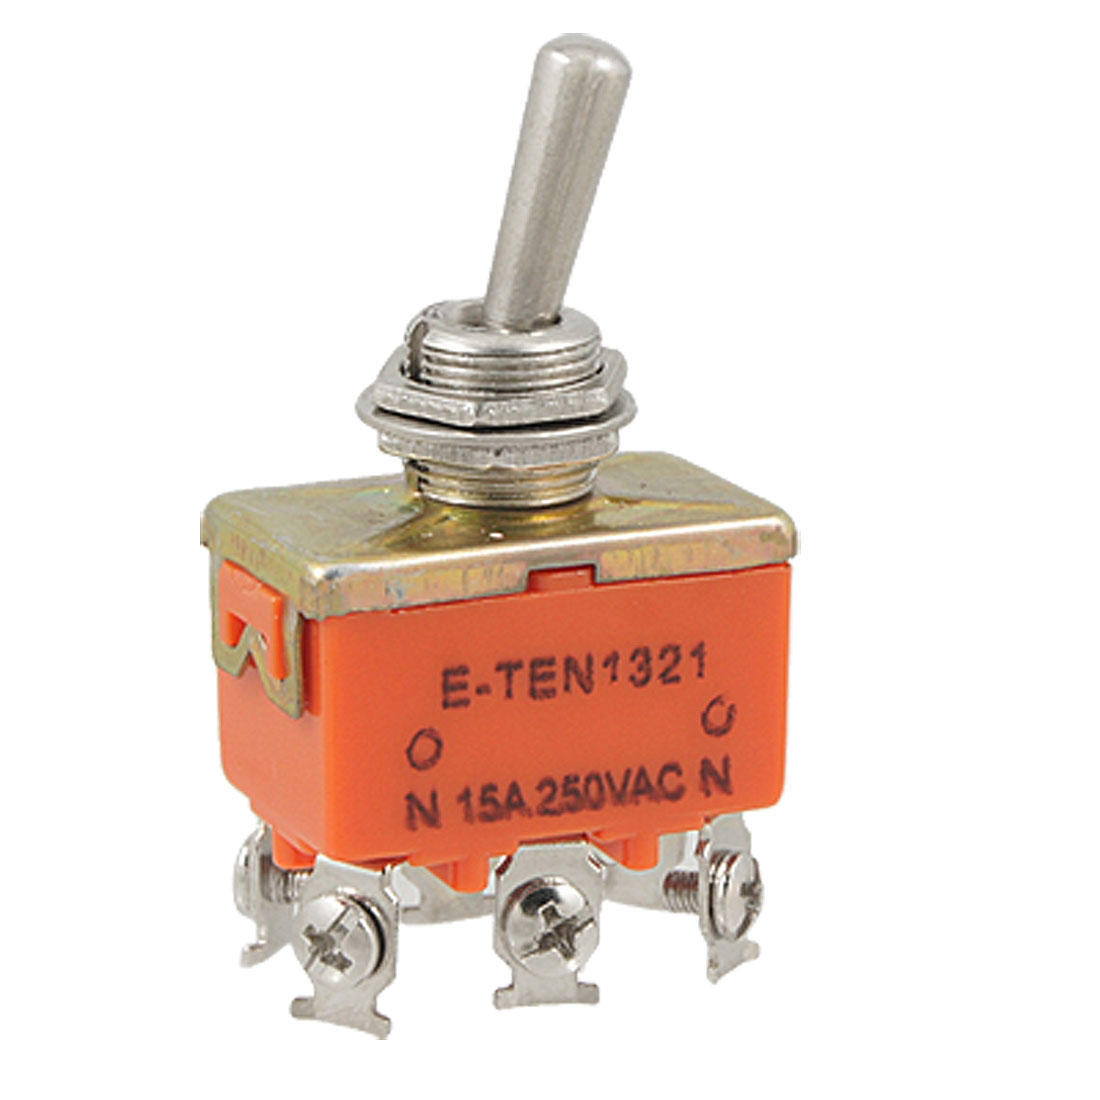 AC 250V 15A ON/ON DPDT 2 Position 6 Screw Terminals Toggle Switch